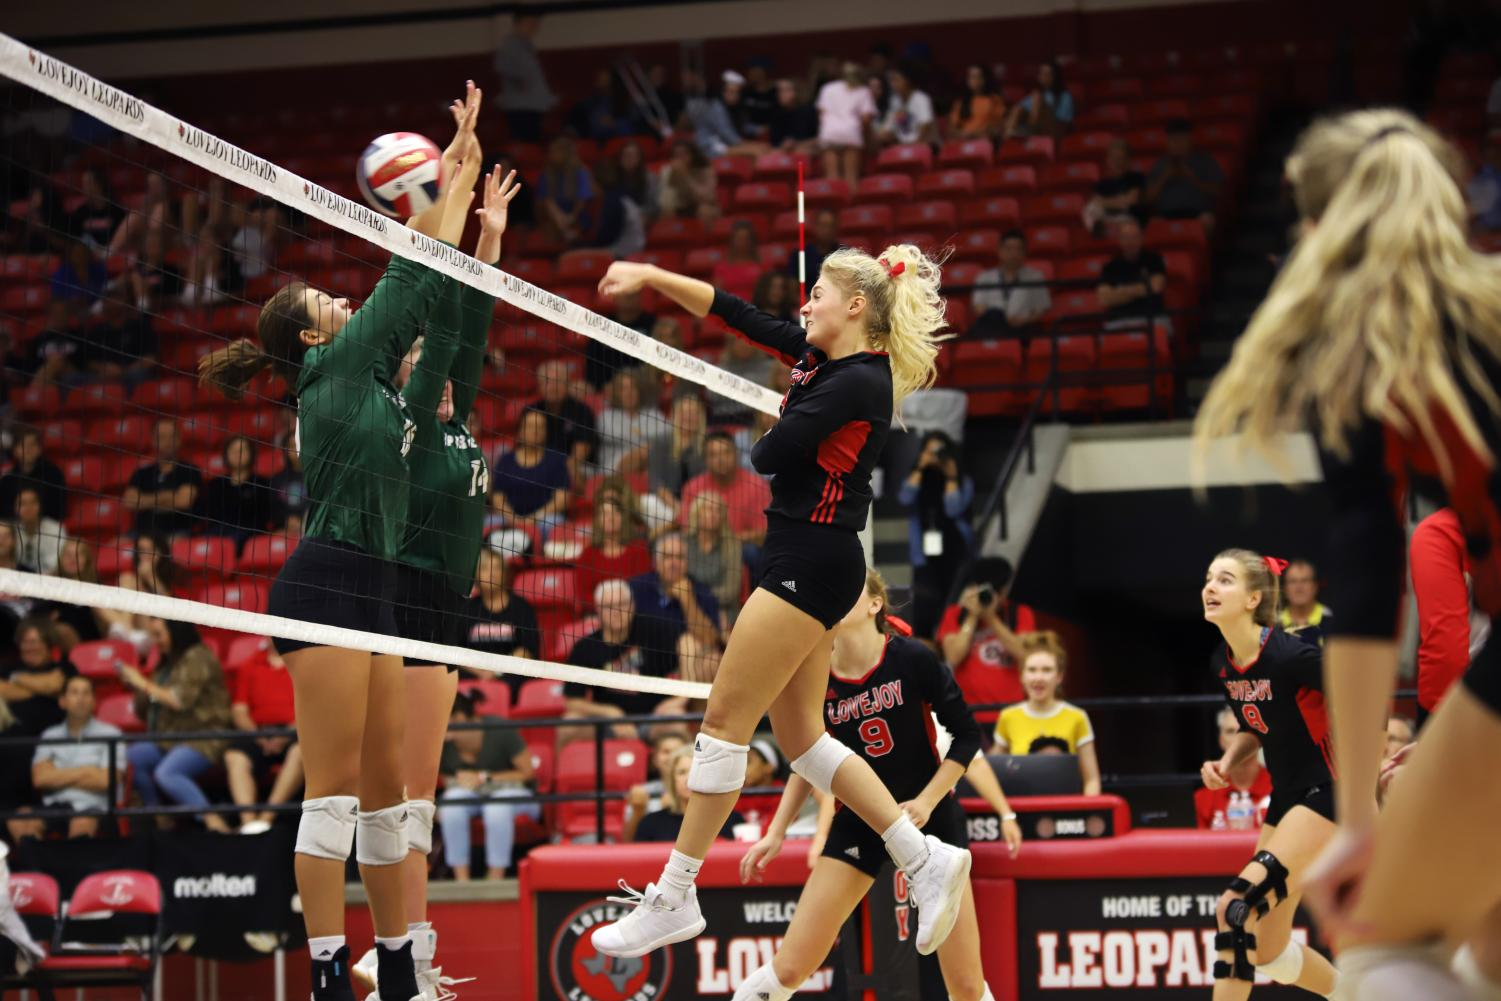 Junior+Libby+Olson+hits+the+ball+past+Propser+defenders+during+the+second+set+of+the+game.+The+team+lost+the+second+set+19-25.